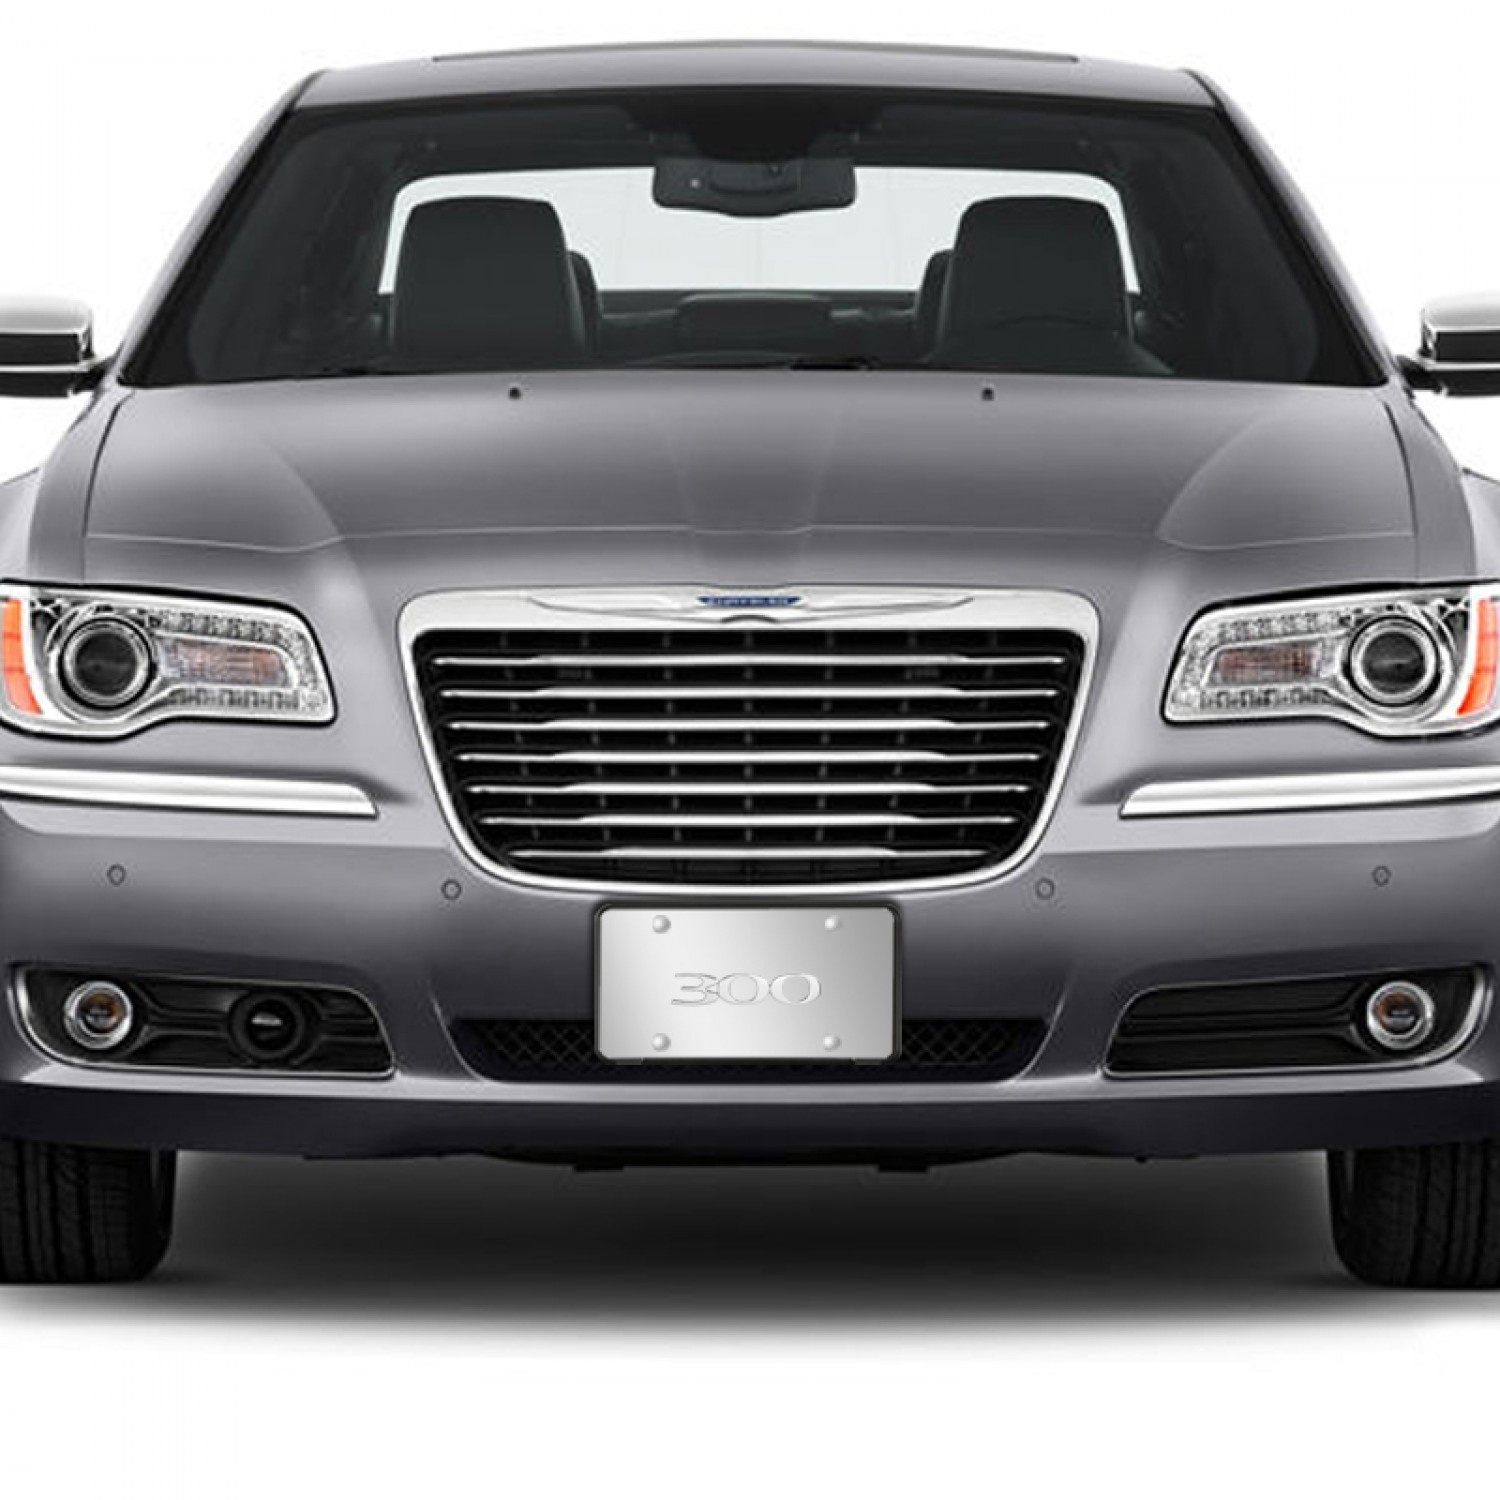 Chrysler 300 3D Logo Chrome Stainless Steel License Plate